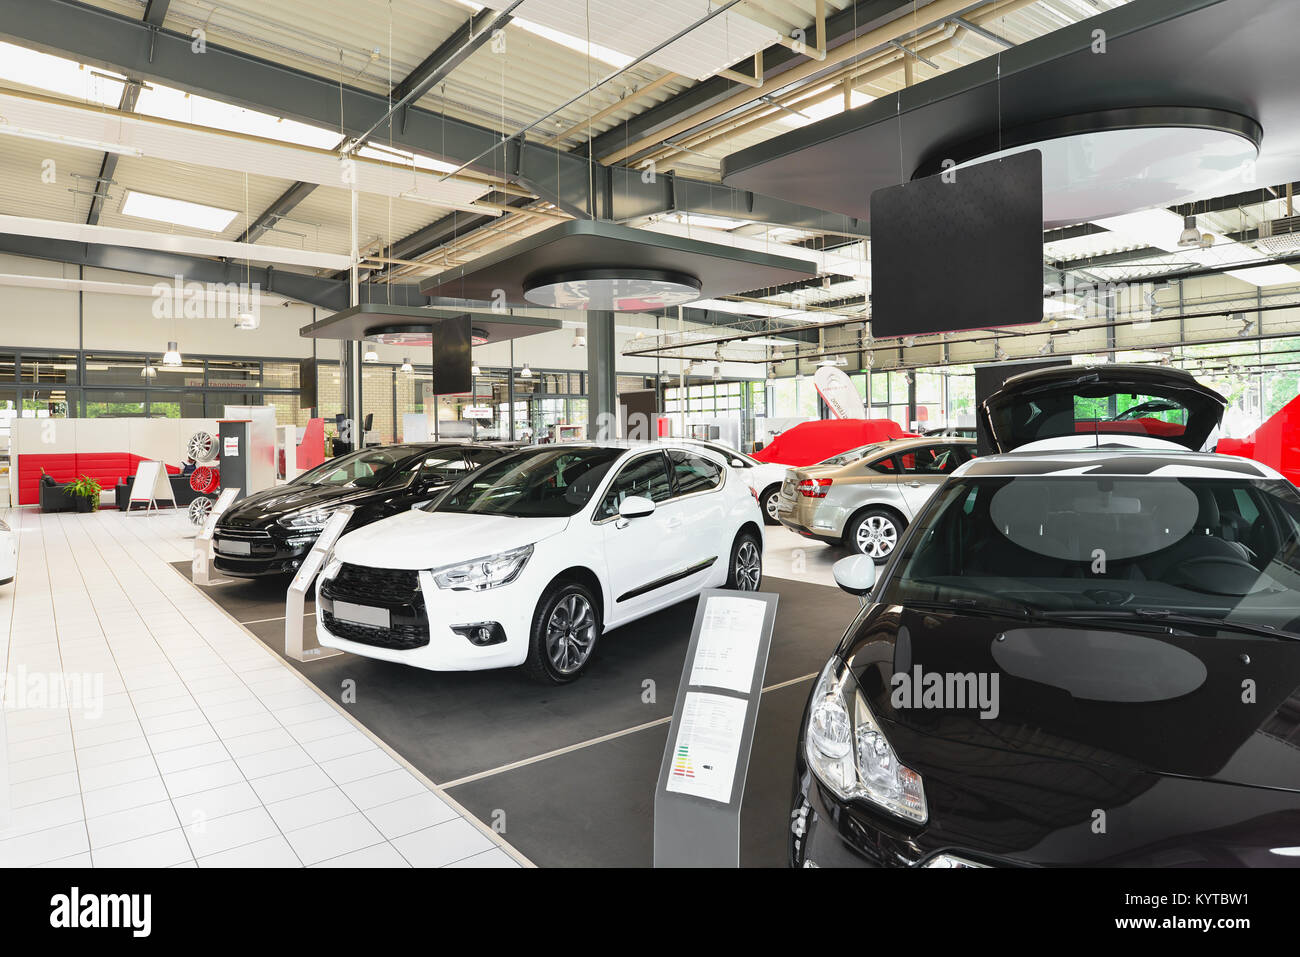 New Cars In The Sales Area Of A Car Dealership Building And Architecture Of A Car Trade Company Stock Photo Alamy